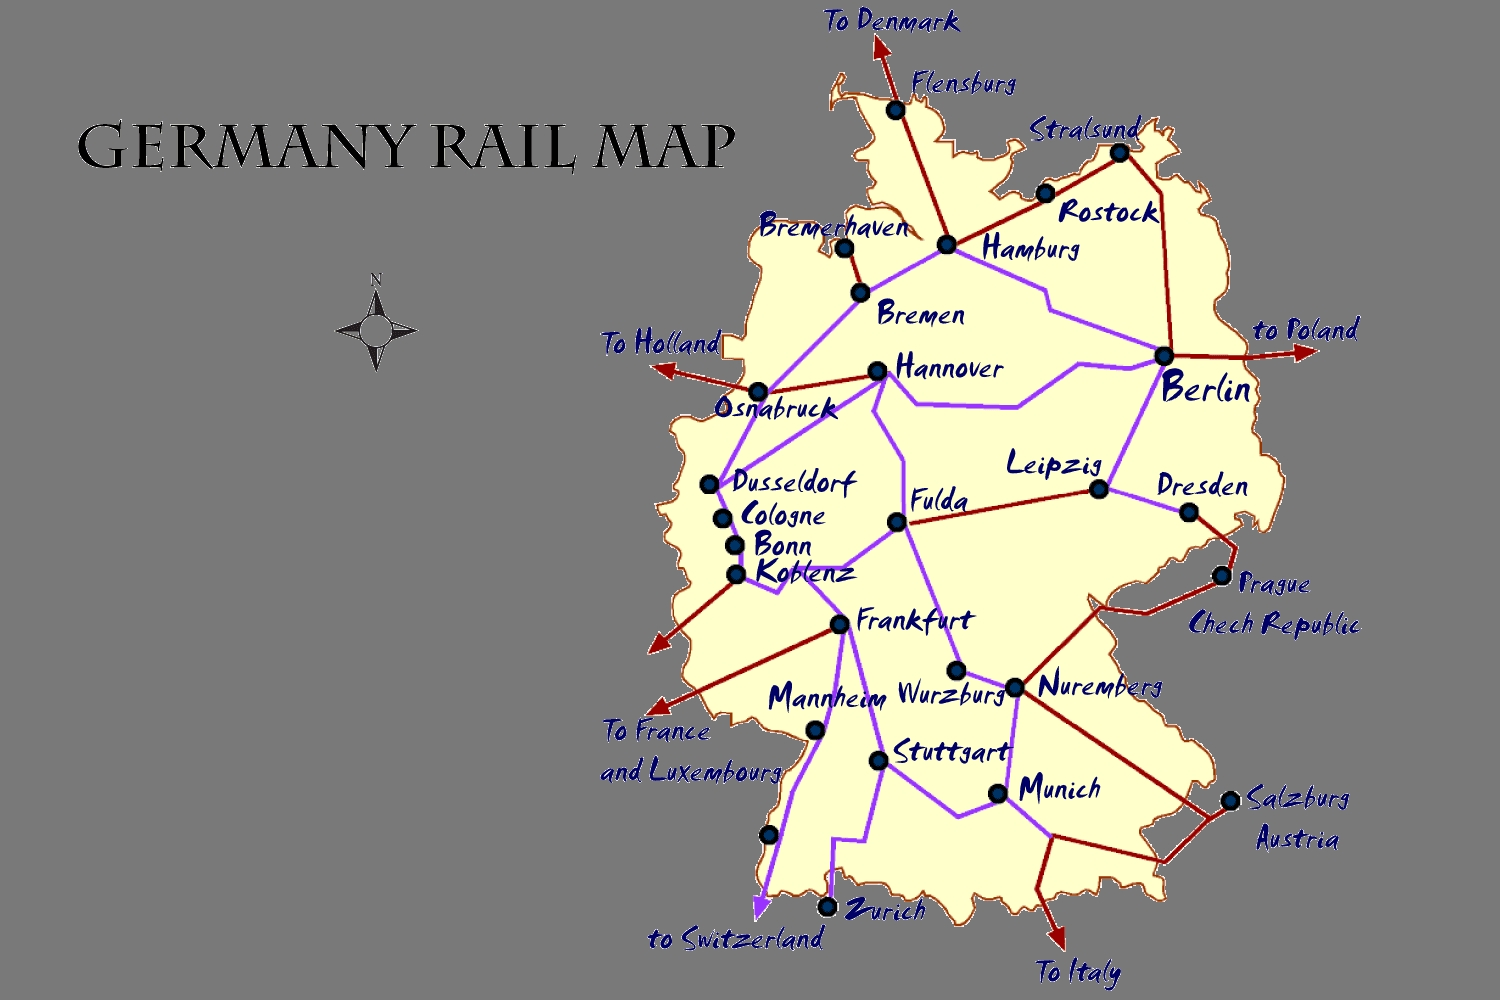 Germany Rail Map And Transportation Guide intended for Frankfurt Germany Rail Map